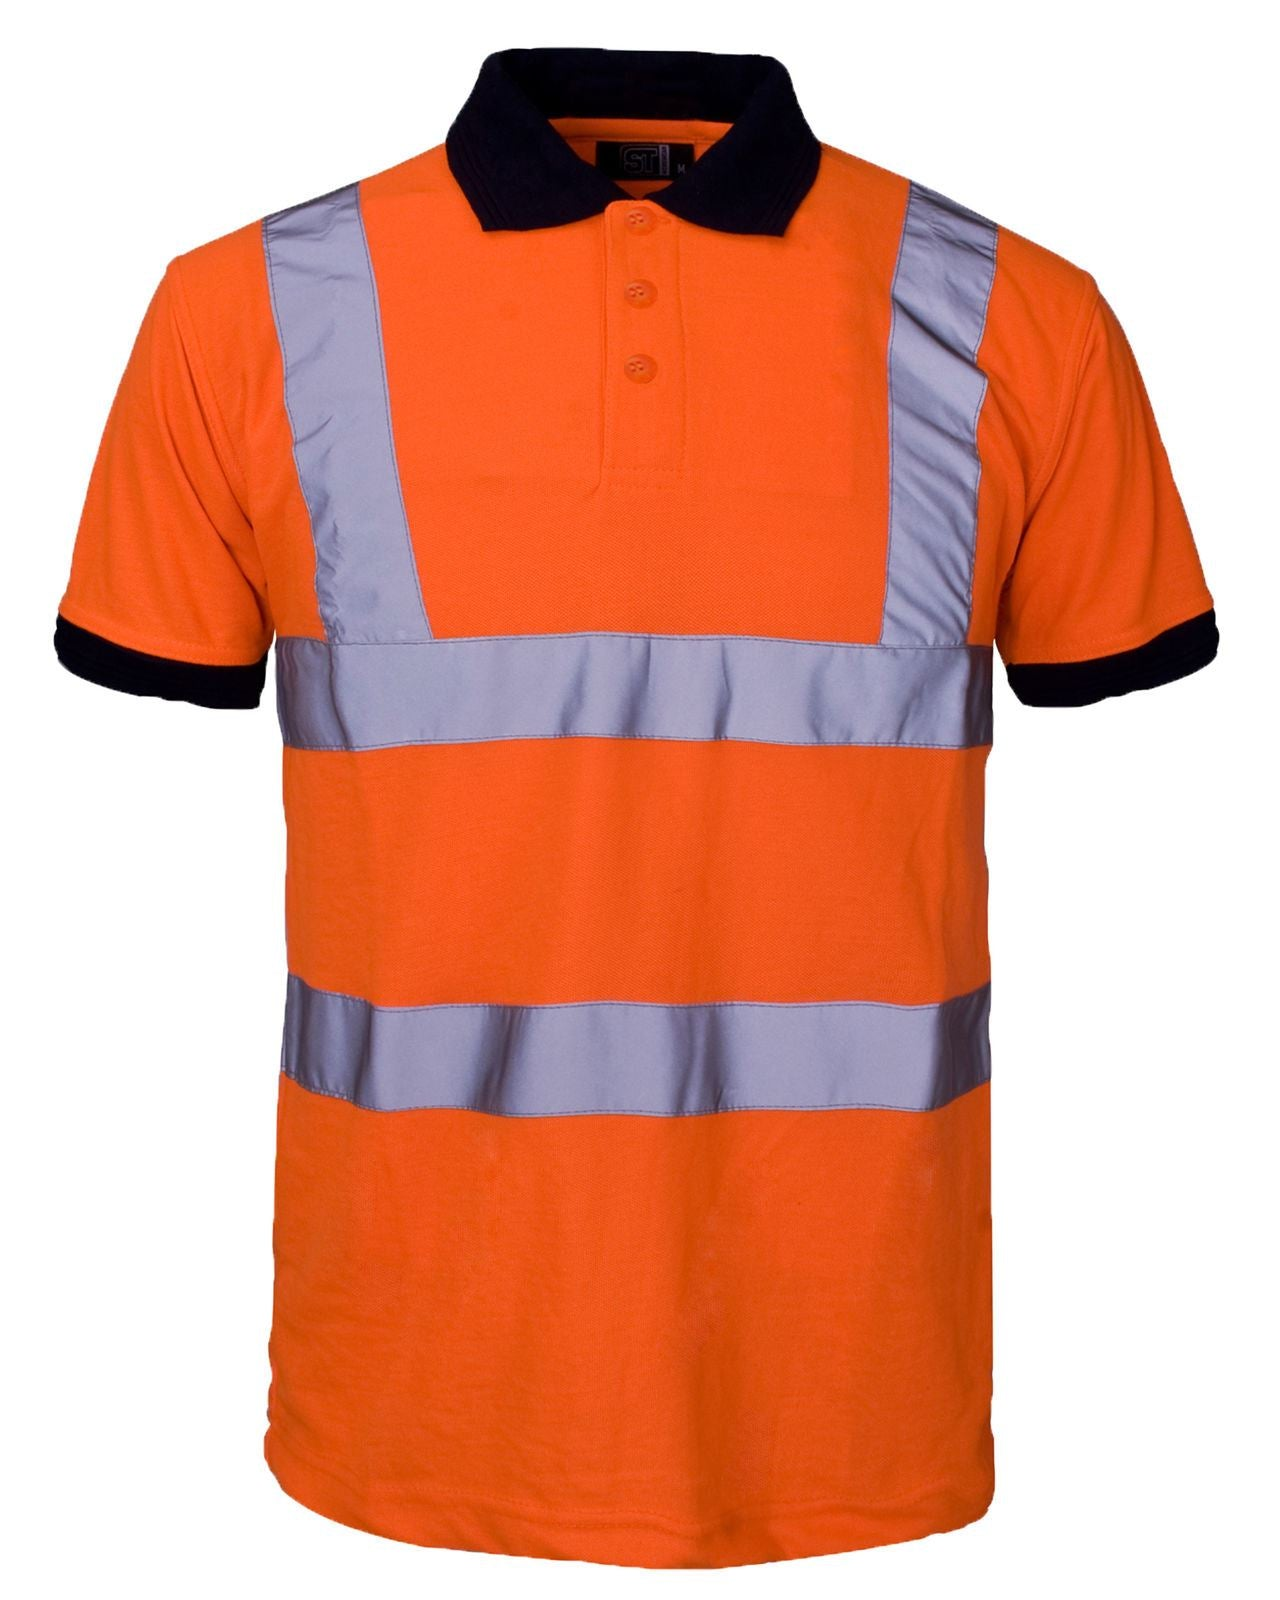 New Hi Visibility High Viz Short Sleeve Safety Work wear Collar Polo T-Shirt Top